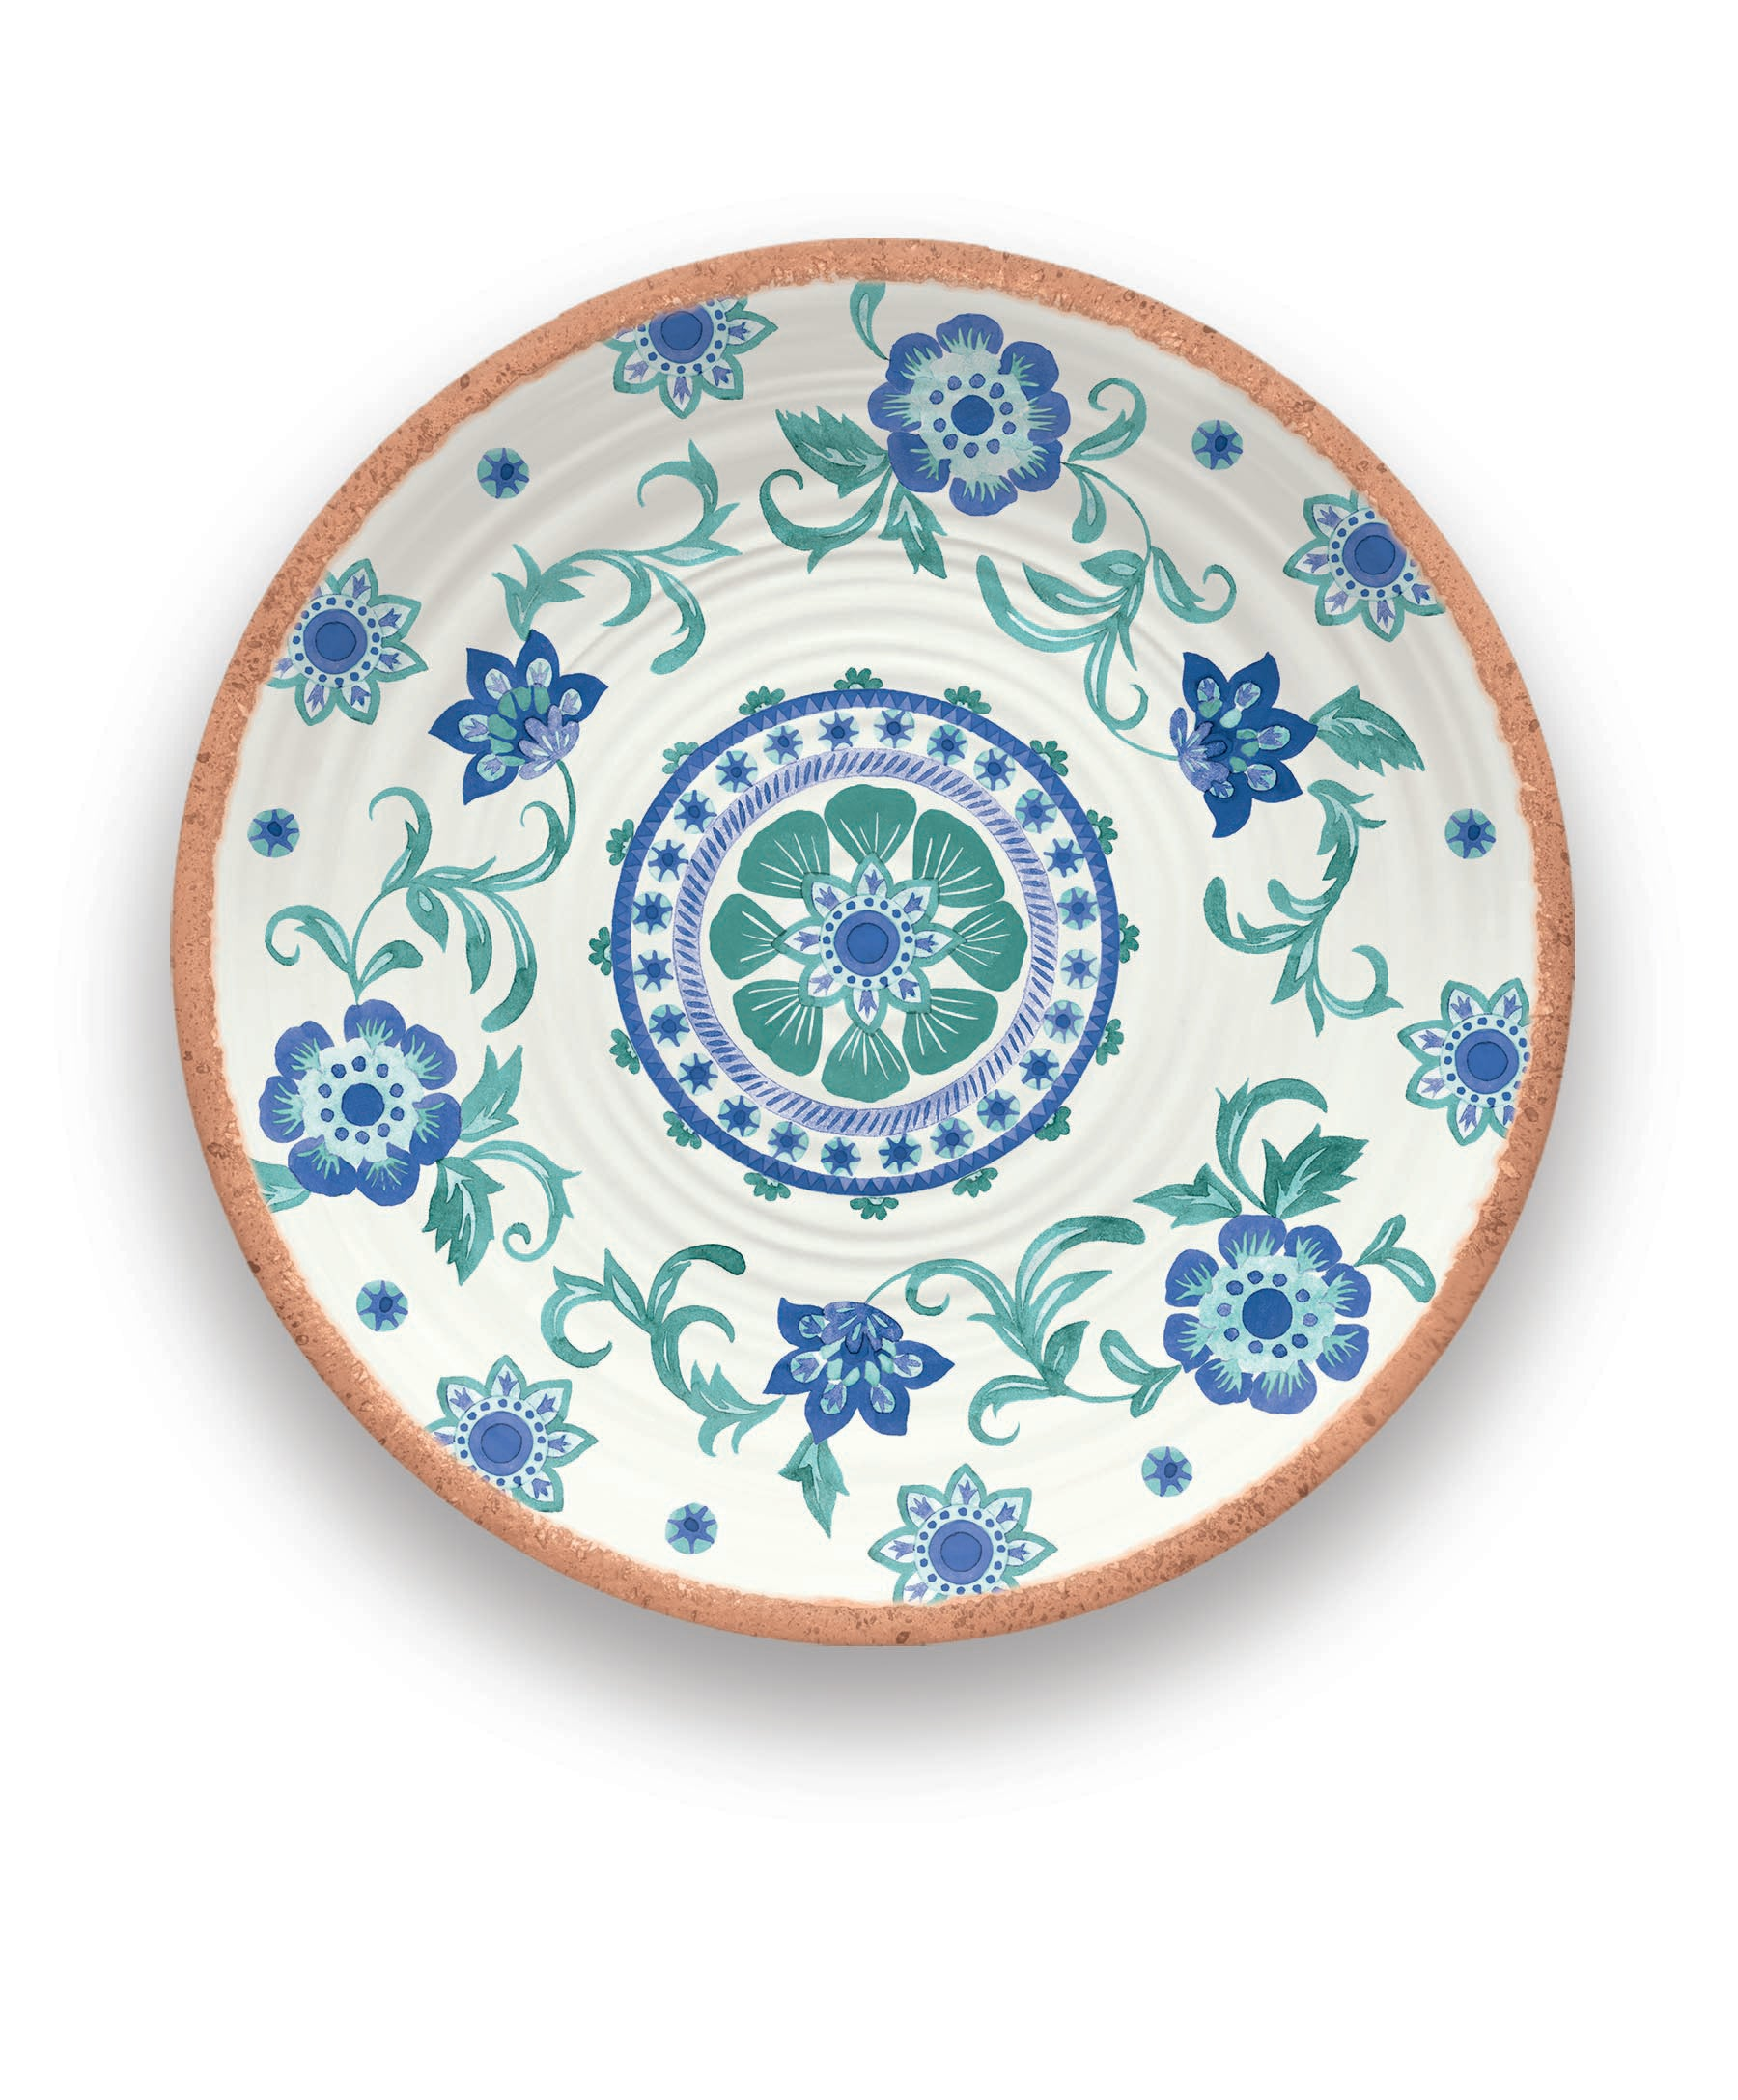 "PAN0140MPRTF - Rio - Melamine Turquoise Floral Round Platter - 14"" by TarHong"